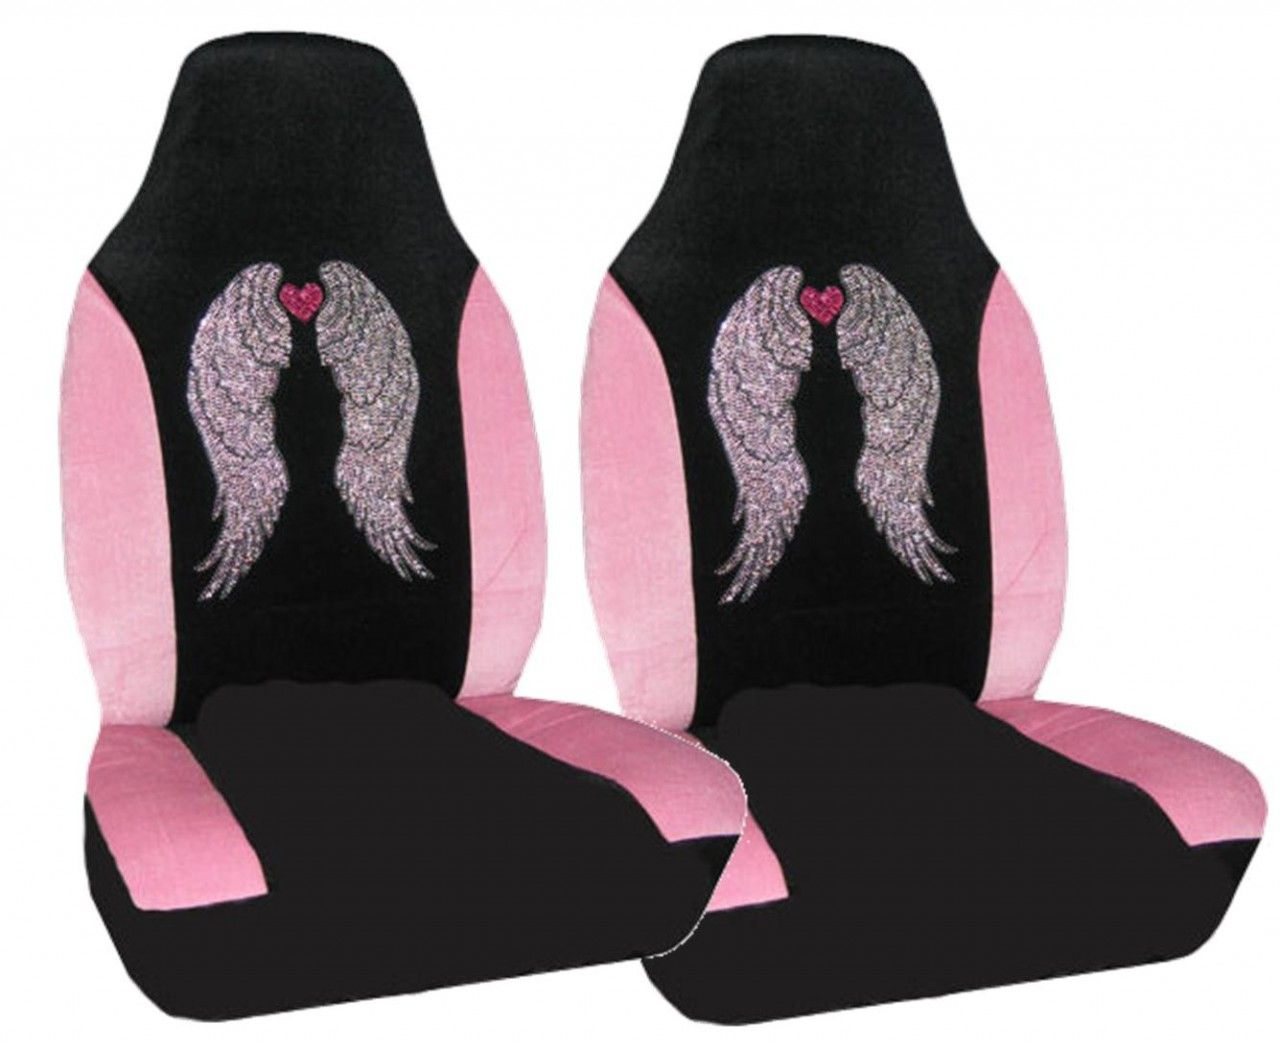 Pink Car Seat Covers Amazon